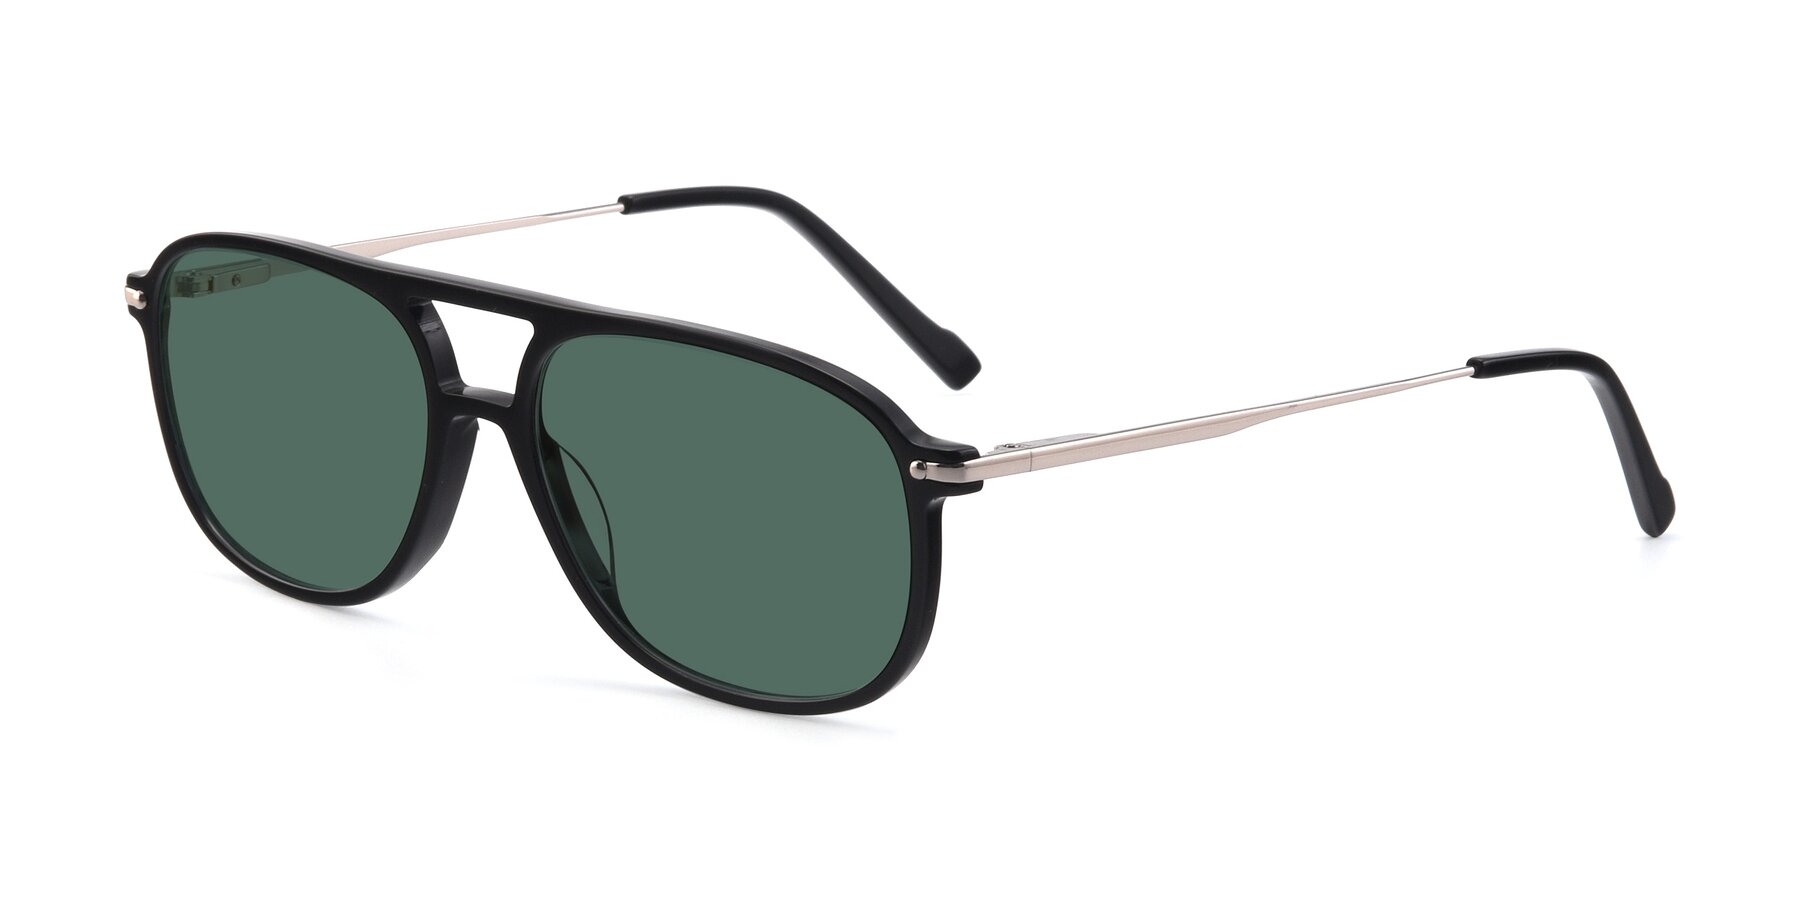 Angle of 17580 in Black with Green Polarized Lenses